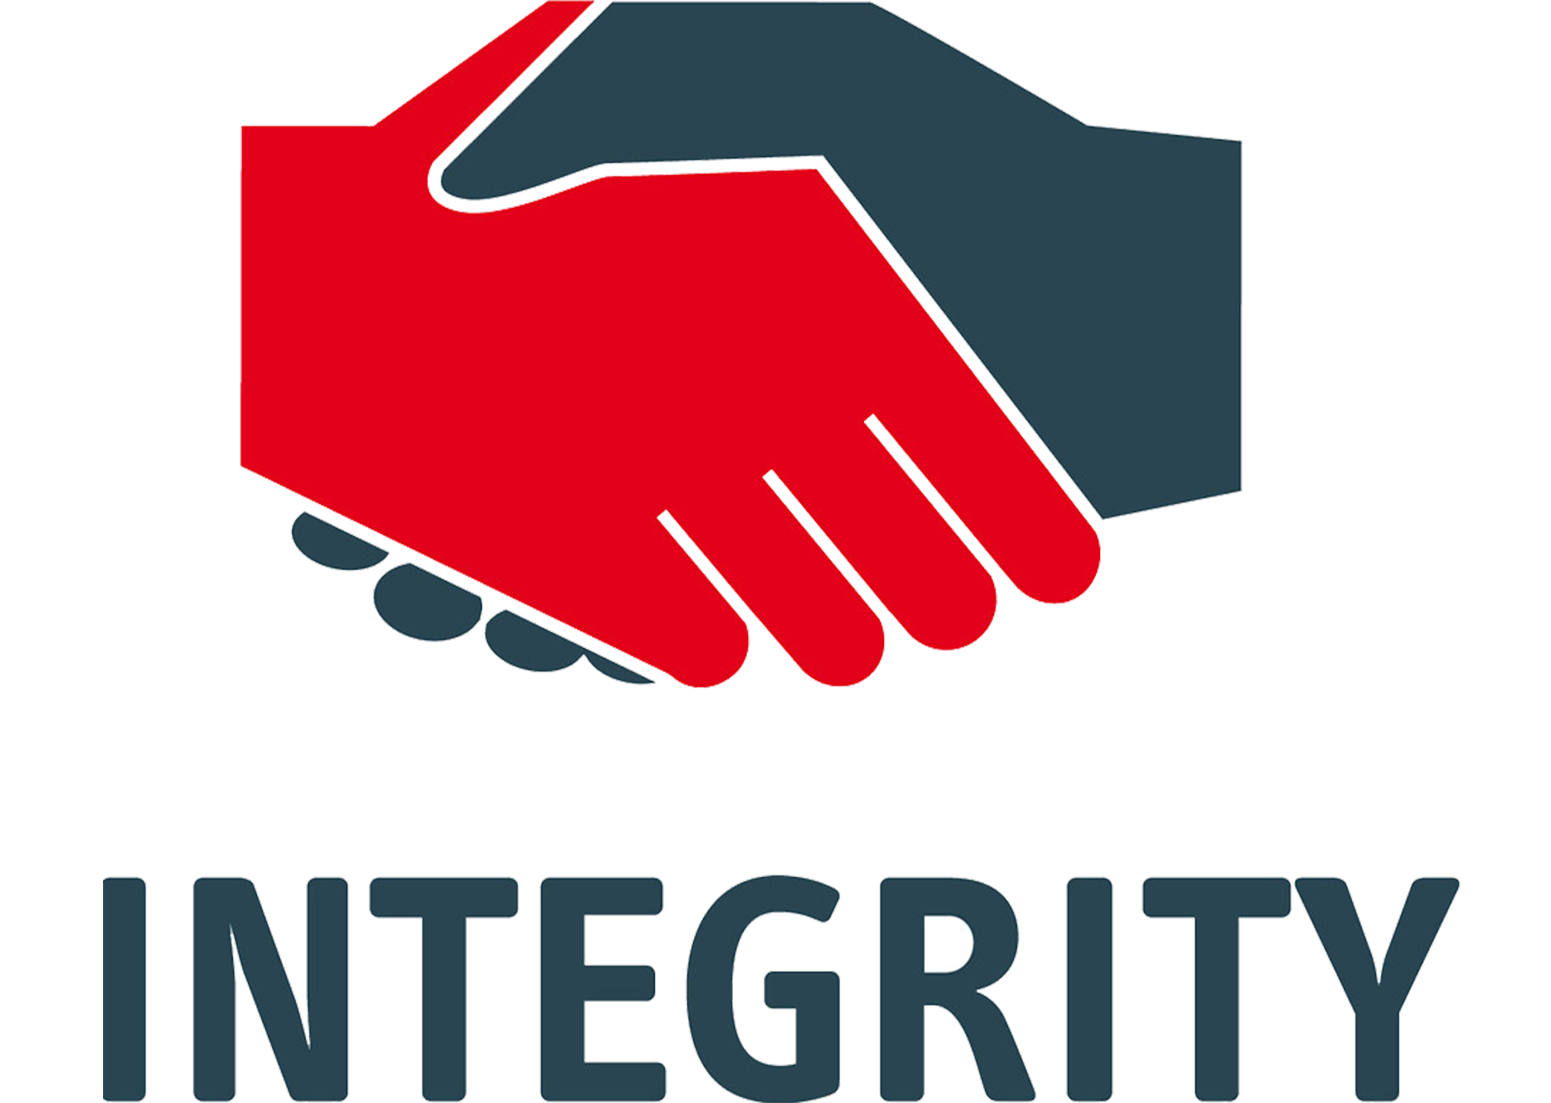 Handshake clipart integrity. Our values think thenlive